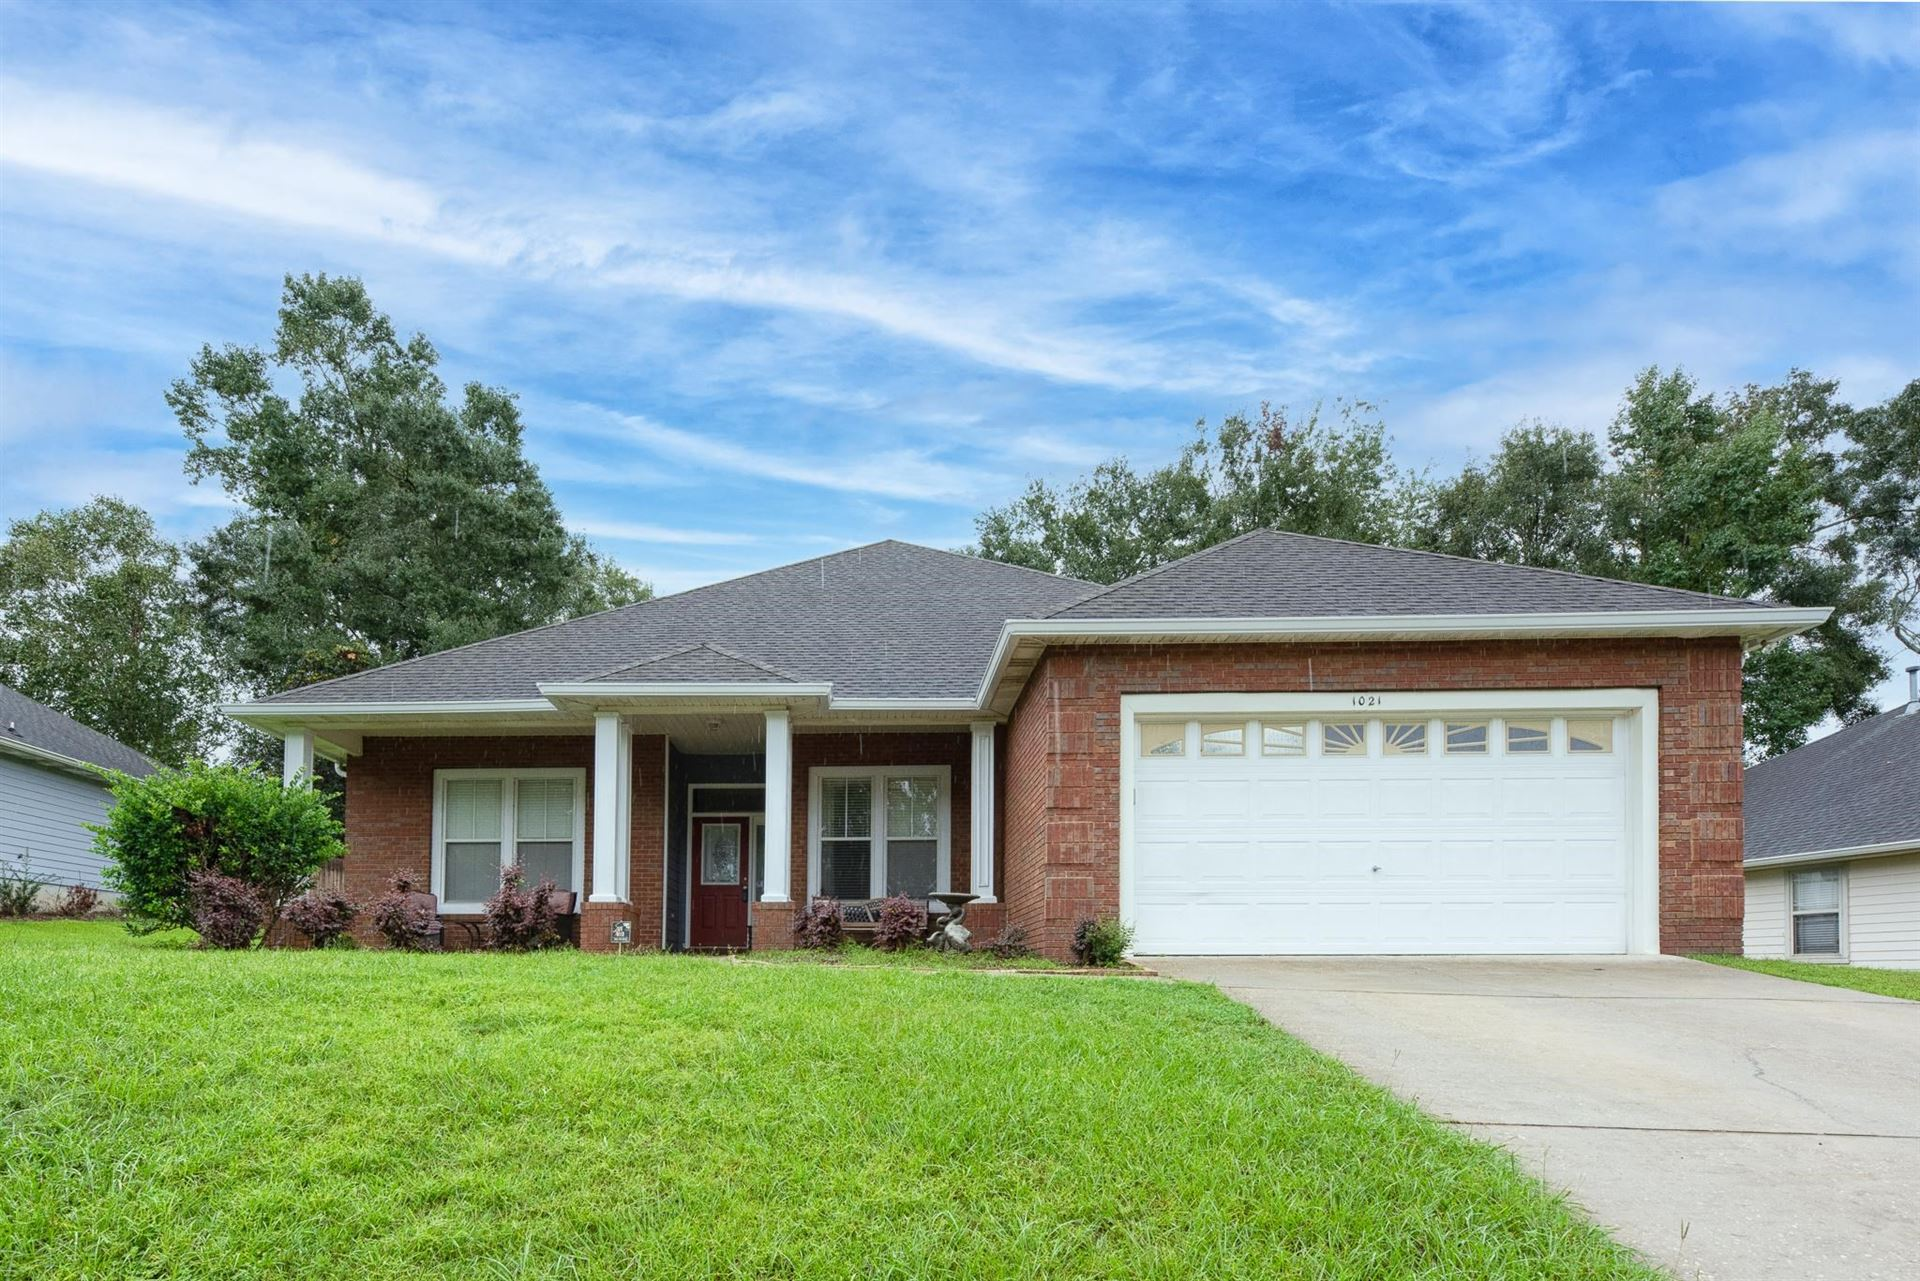 Photo of 1021 Mohican Trail, TALLAHASSEE, FL 32317 (MLS # 338560)